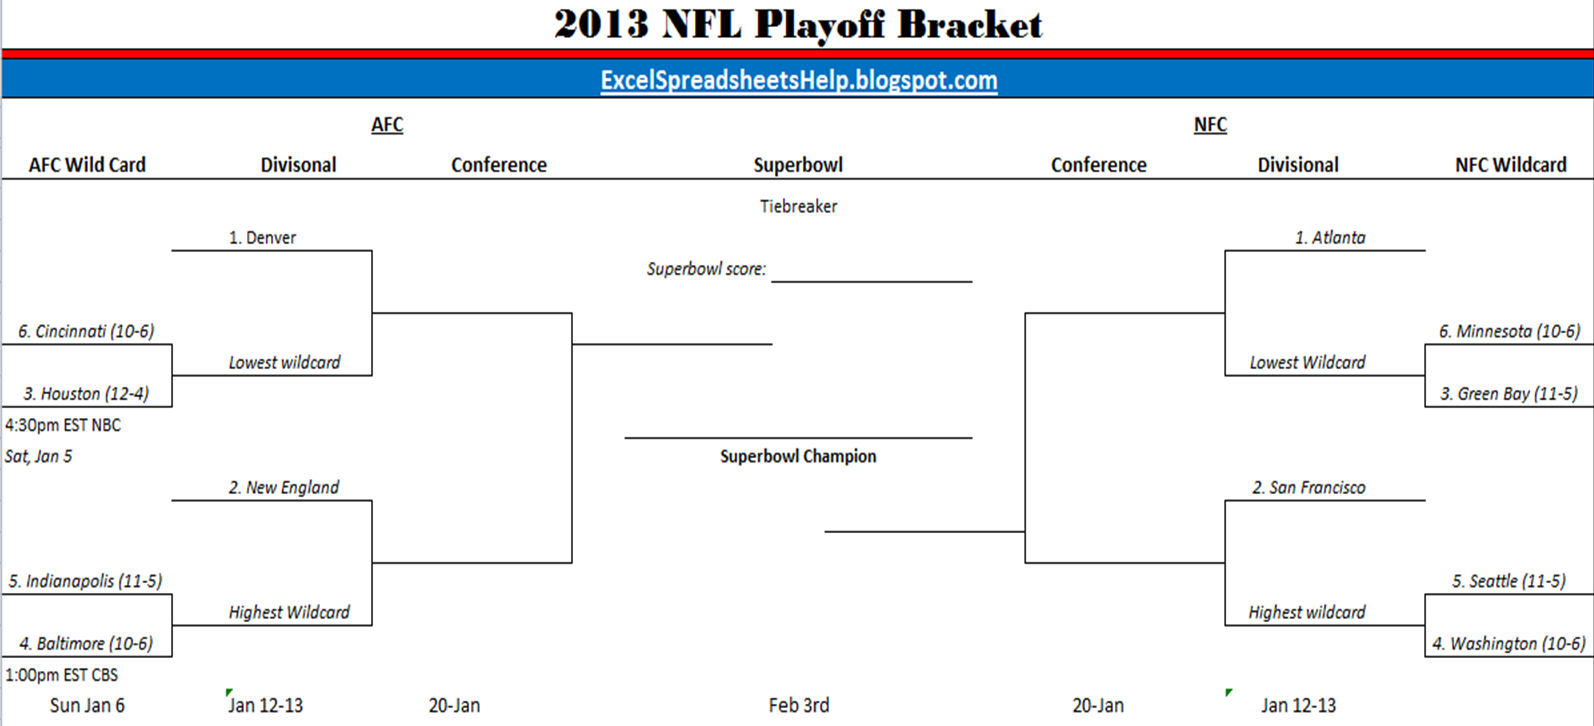 Lucrative image with printable nfl playoff brackets